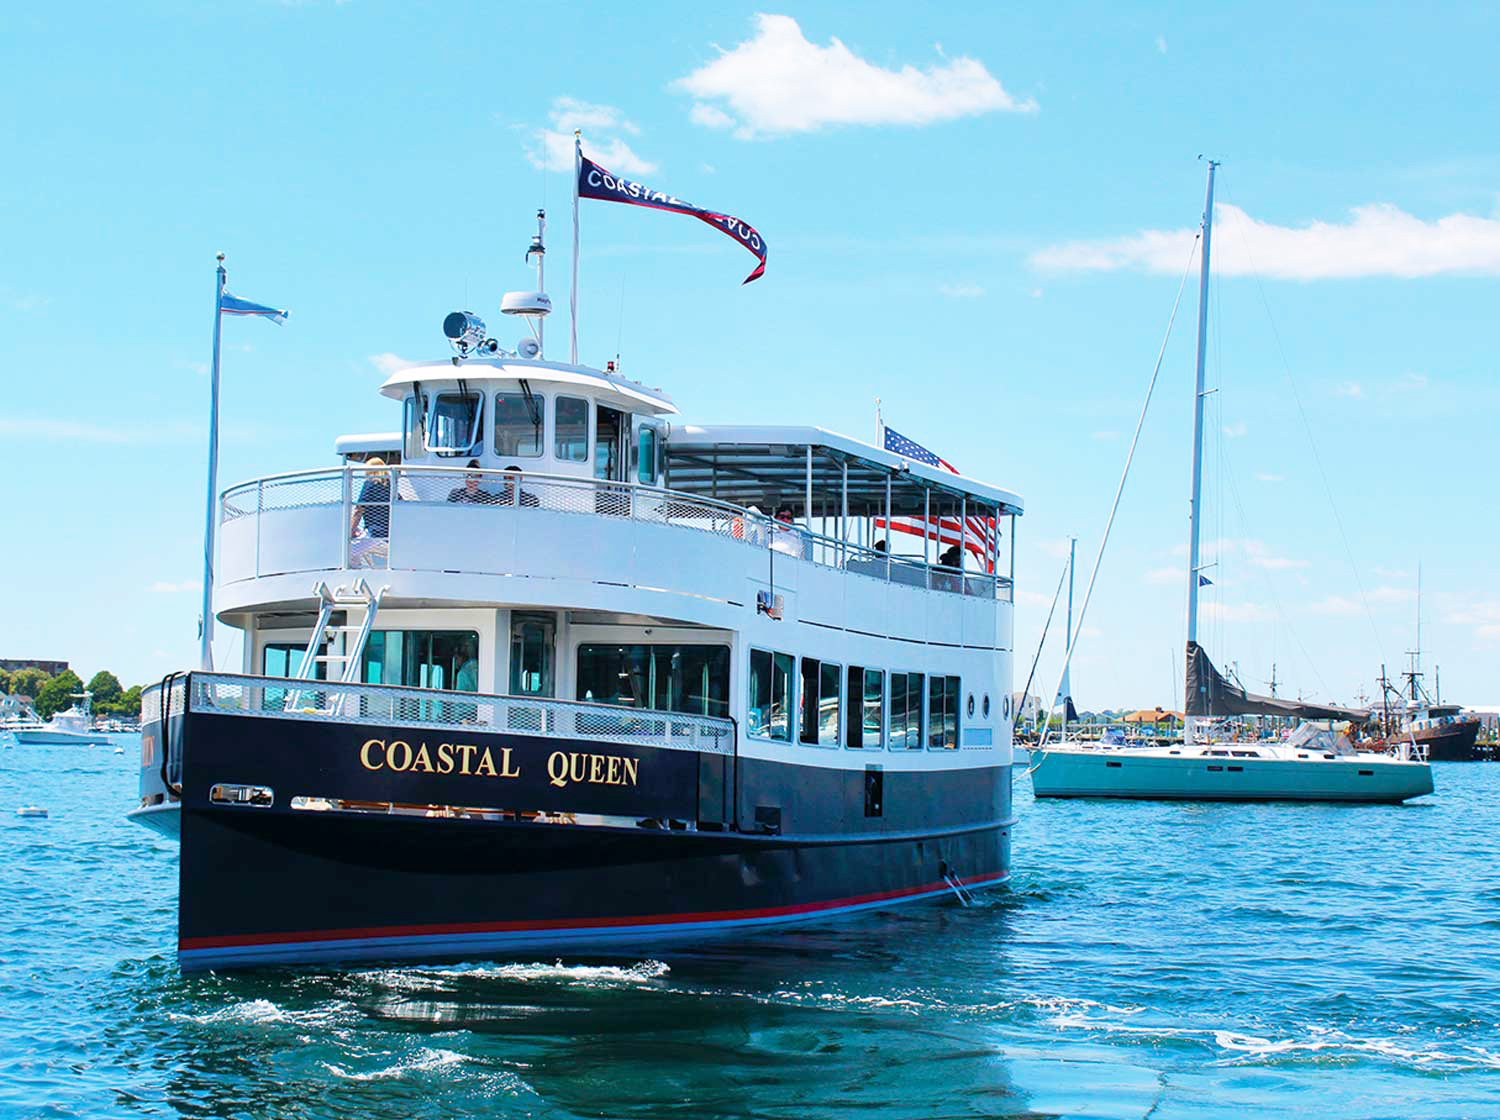 Coastal Queen Cruises - Scenic Bay Cruises - Jamestown Newport Ferry